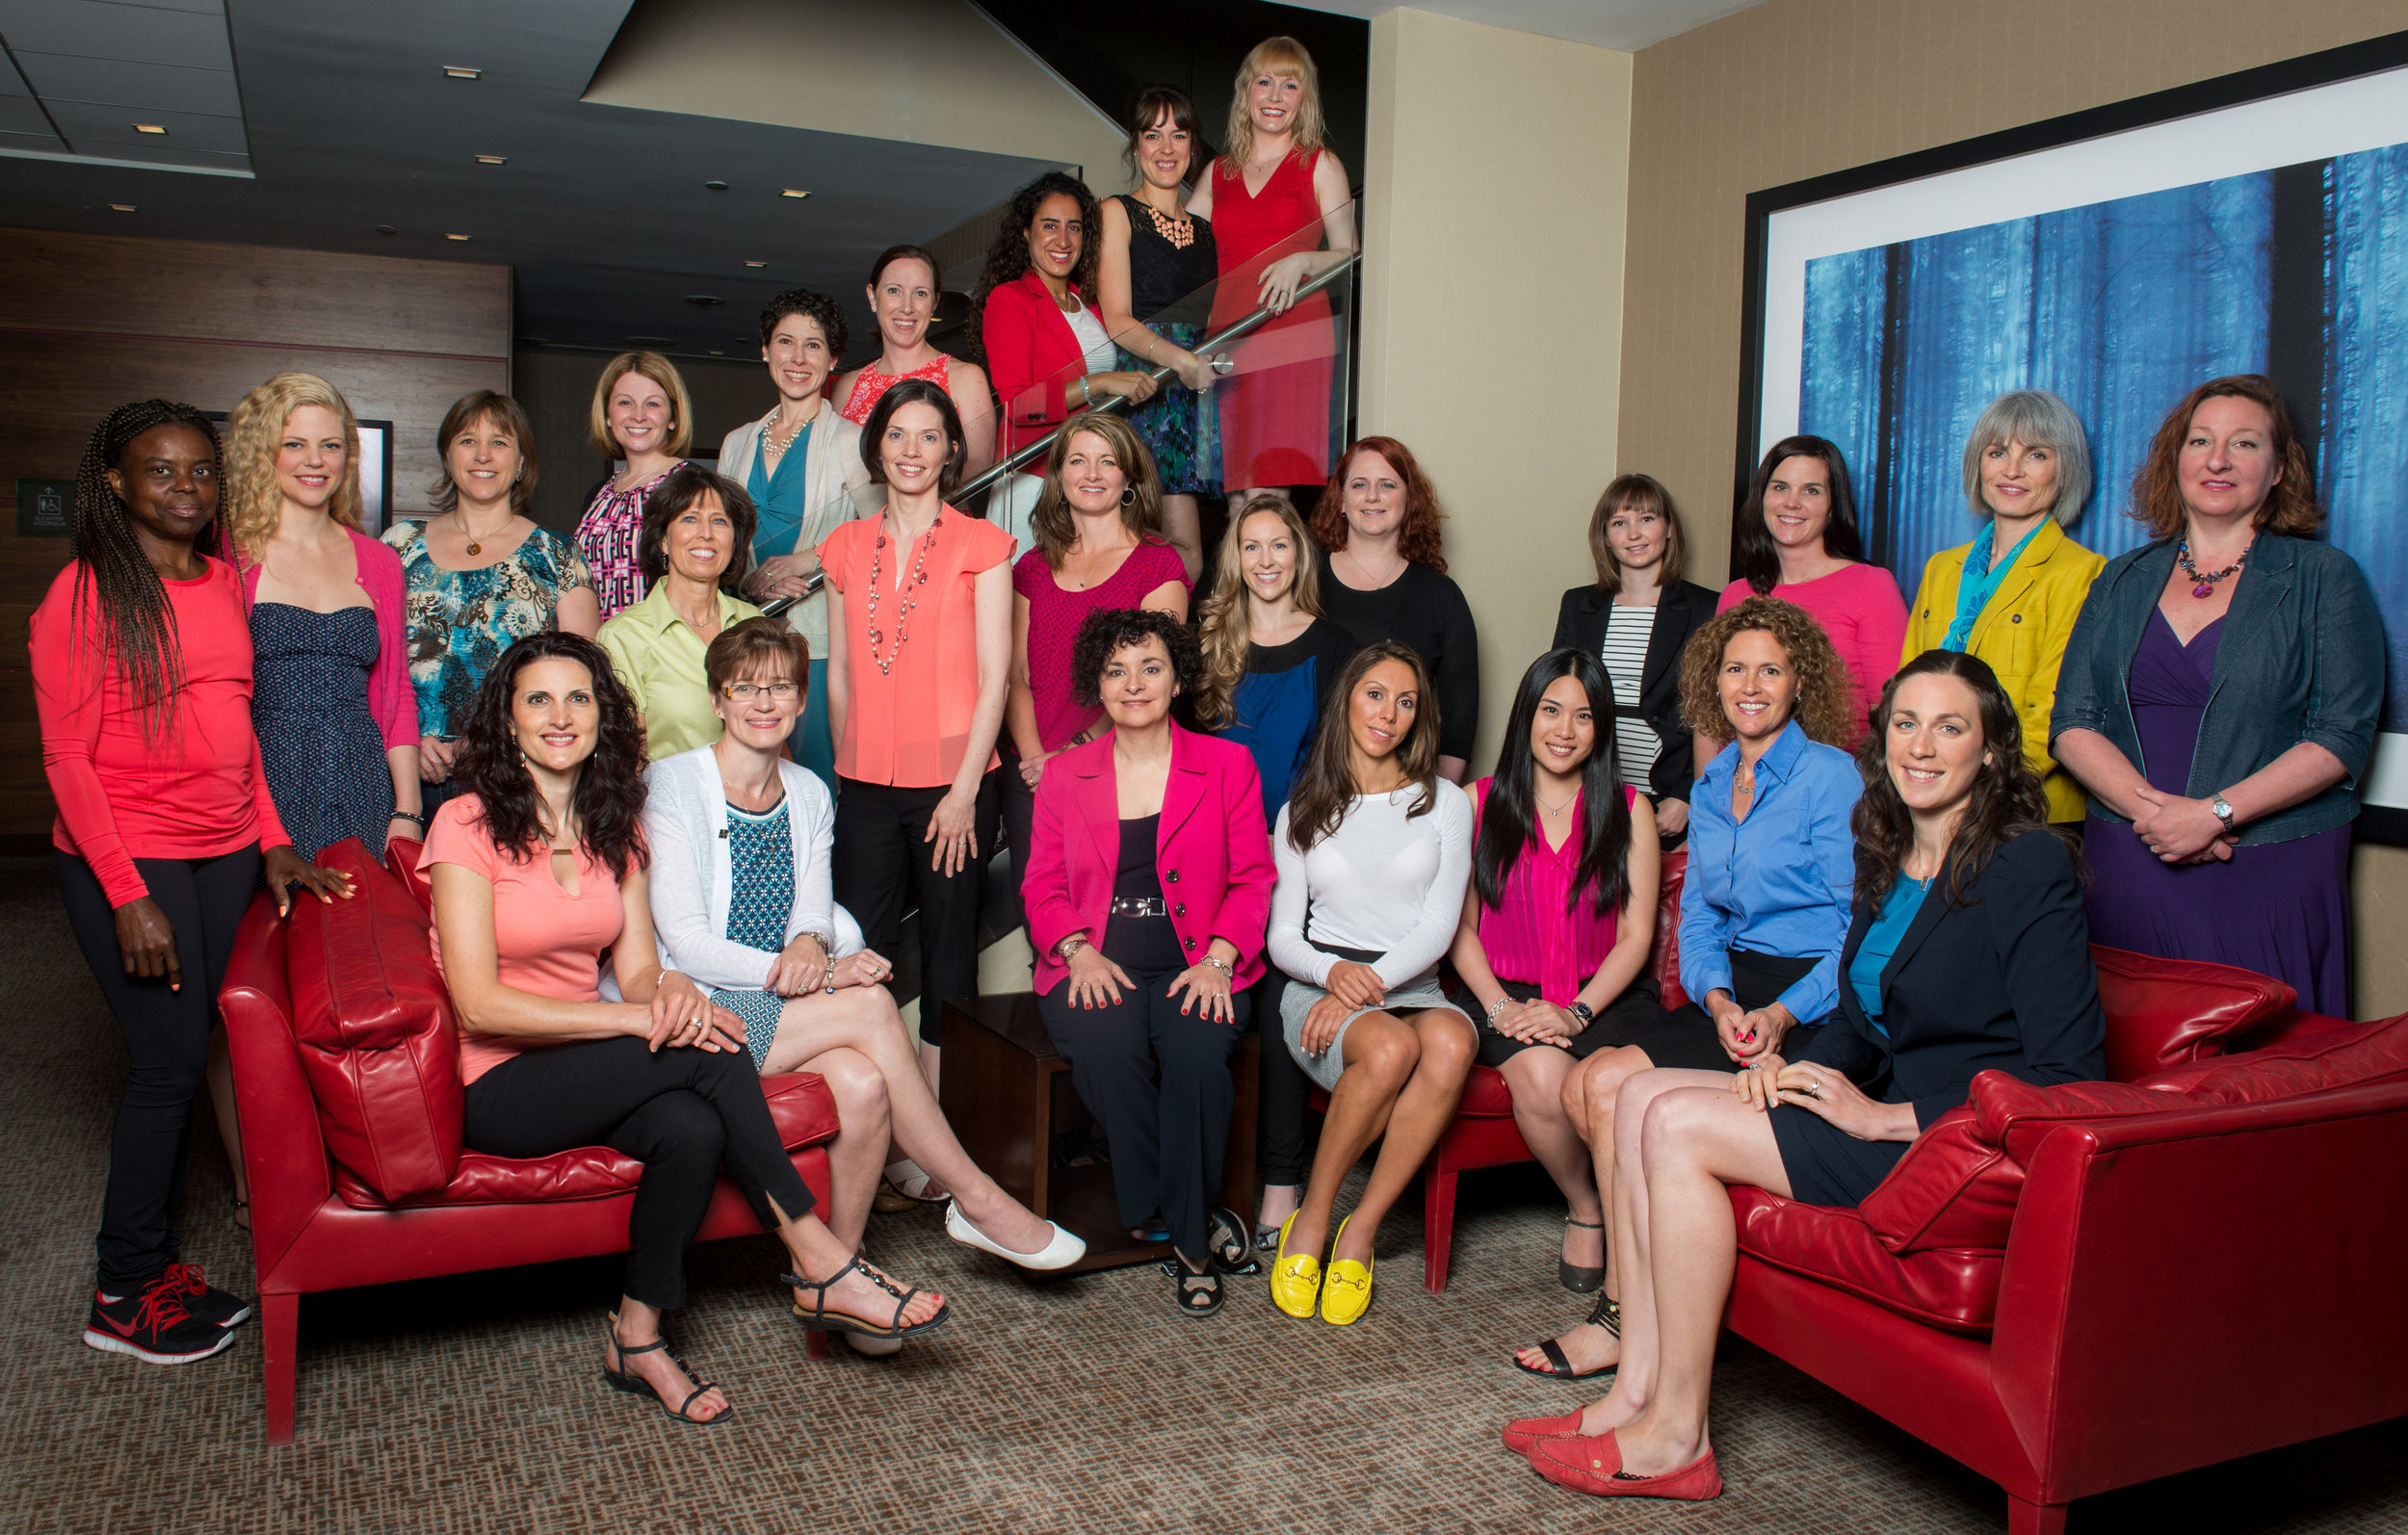 Your friendly-neighbourhood dietitians! This picture was taken a few years back at a national dietitian conference in Ottawa of consulting dietitians across Canada.